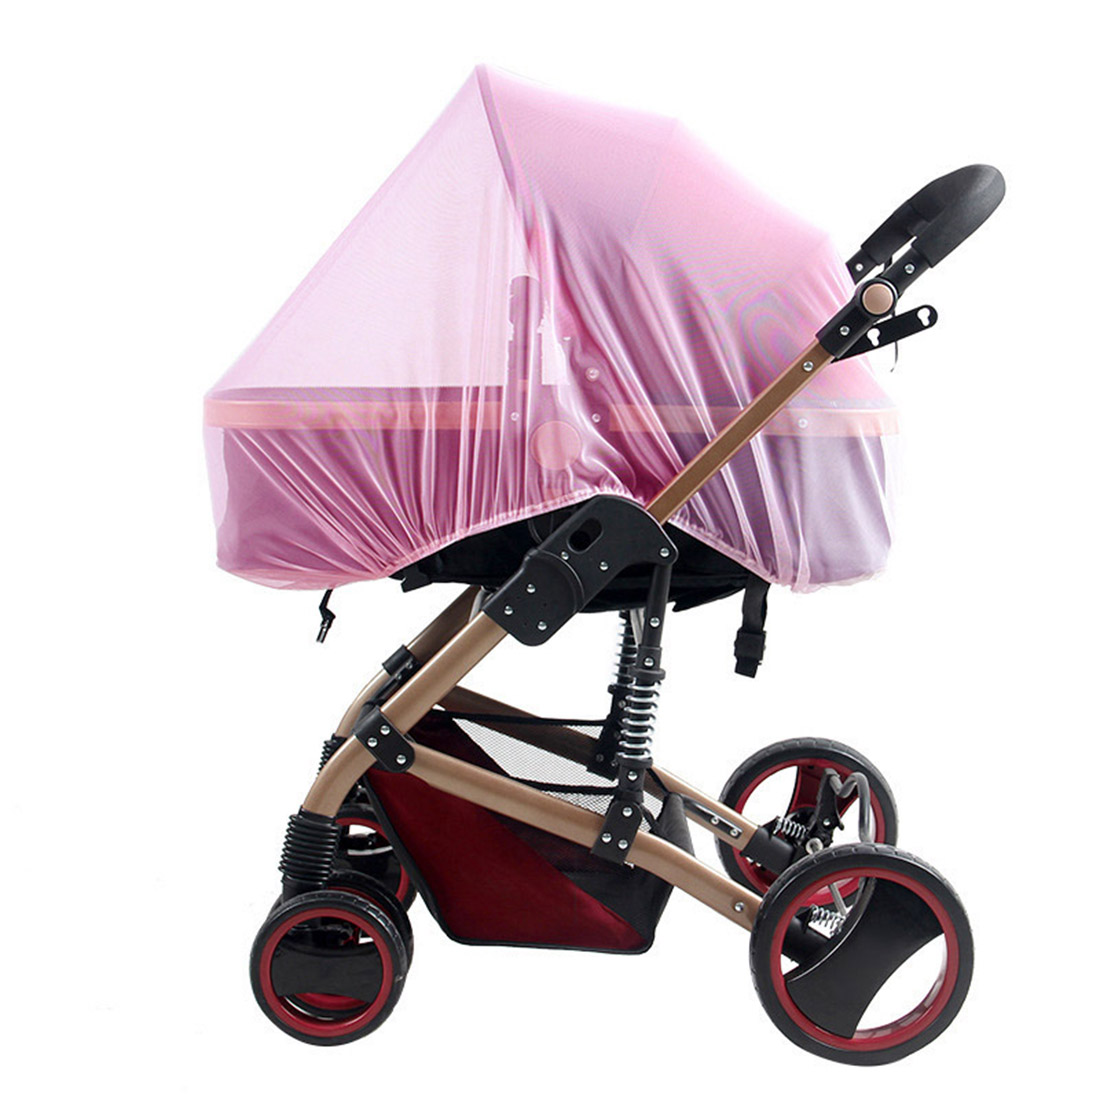 Universal Full Cover Mosquito and Insect Net for Baby Strollers Bassinets Cradles with Elastic Band